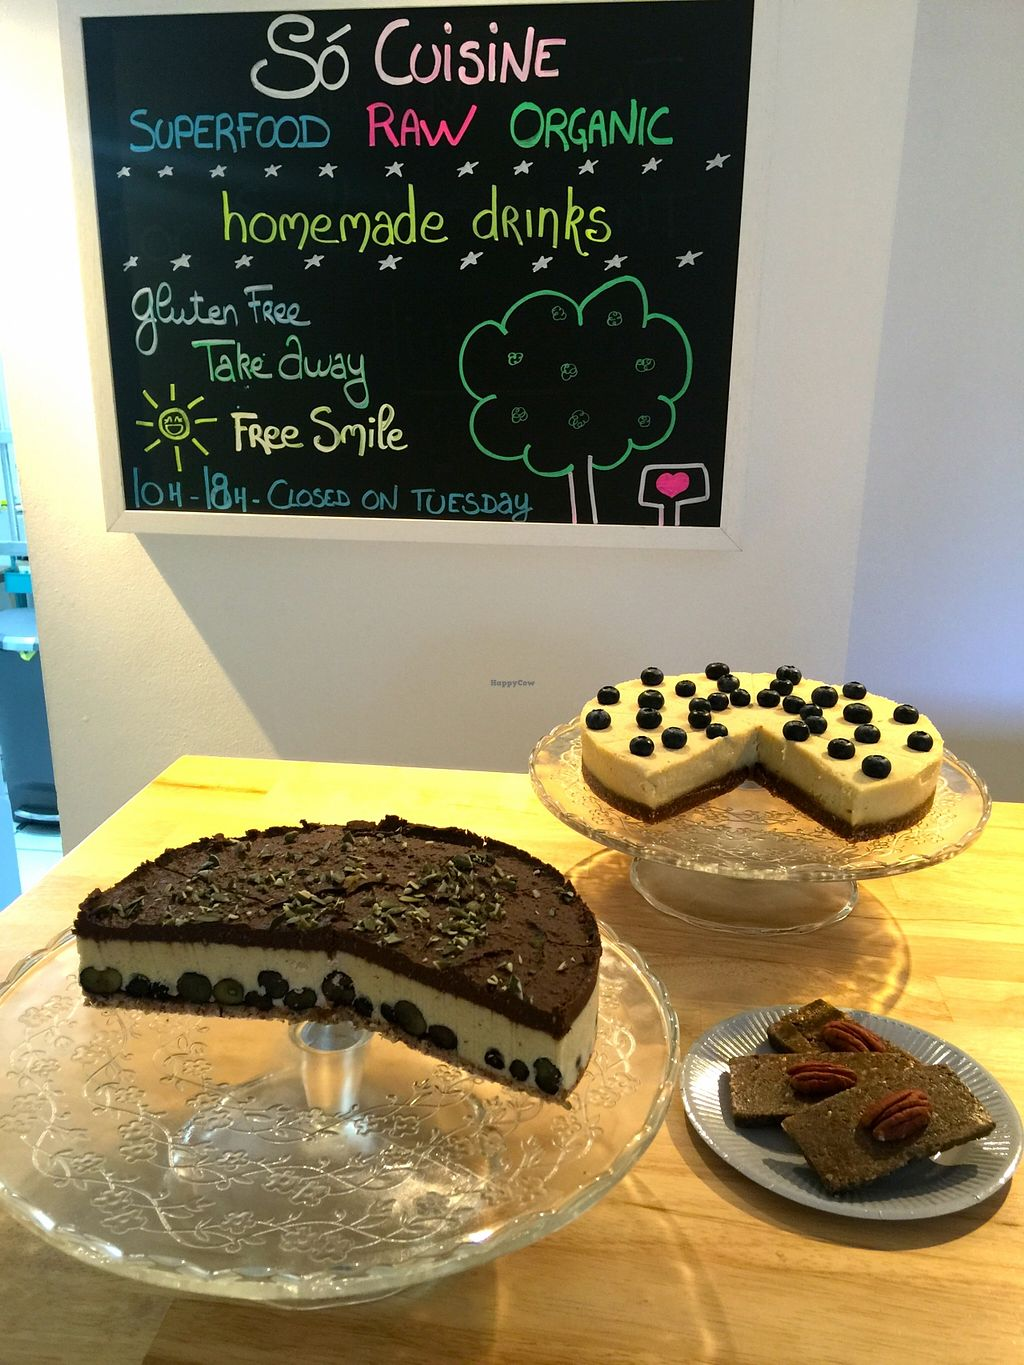 """Photo of Só Cuisine  by <a href=""""/members/profile/Anne%20VDH"""">Anne VDH</a> <br/>Fabulous raw desserts from So Cuisine <br/> December 30, 2015  - <a href='/contact/abuse/image/67686/130416'>Report</a>"""